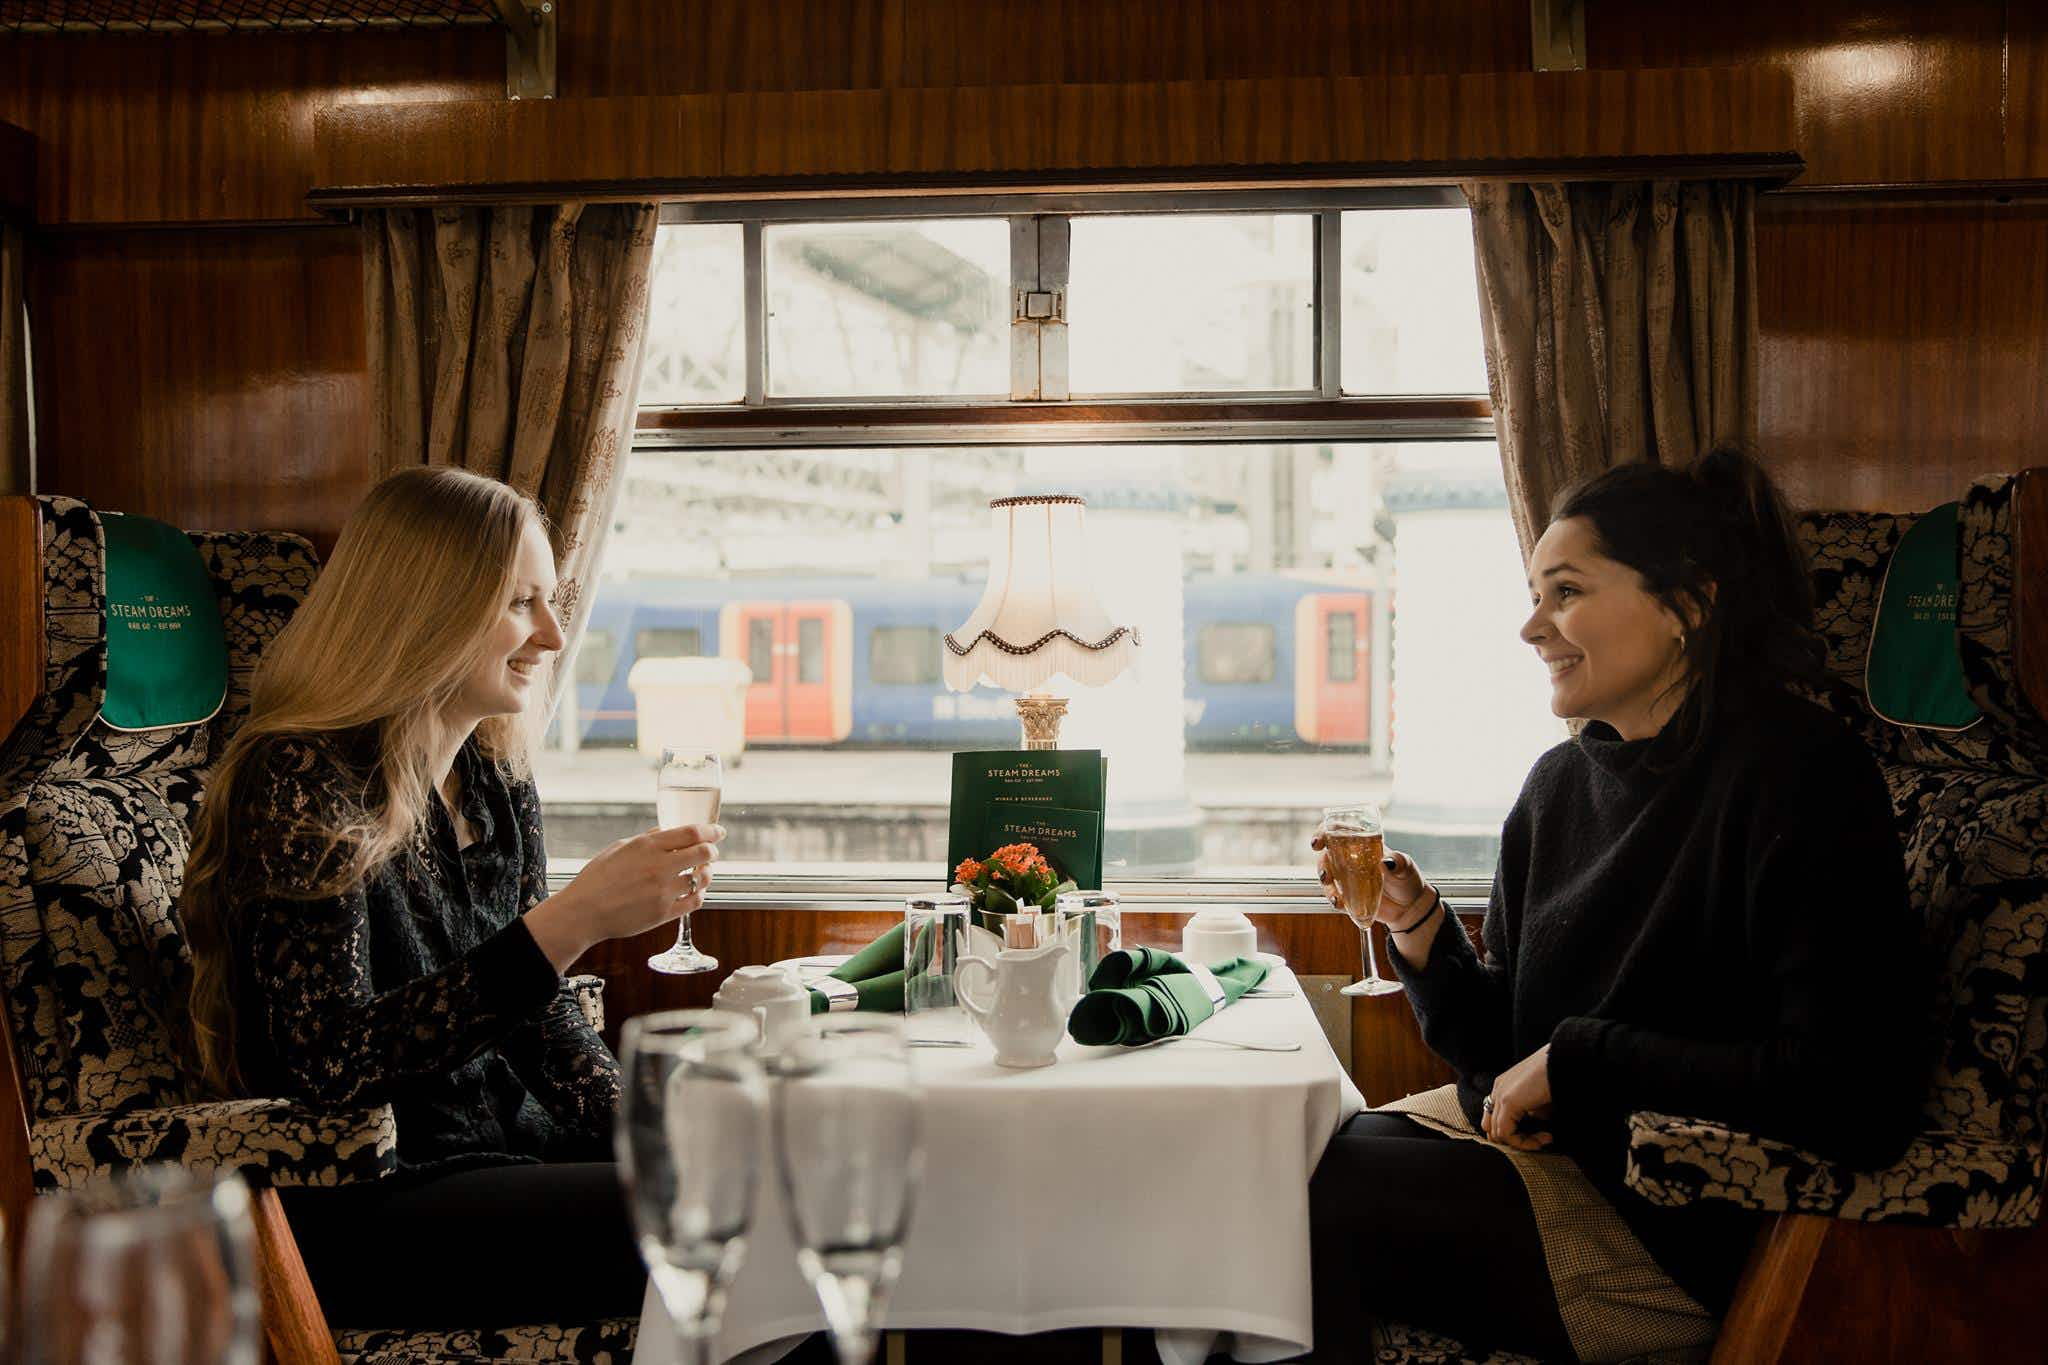 Journey in style with champagne on a steam train from London to Royal Windsor